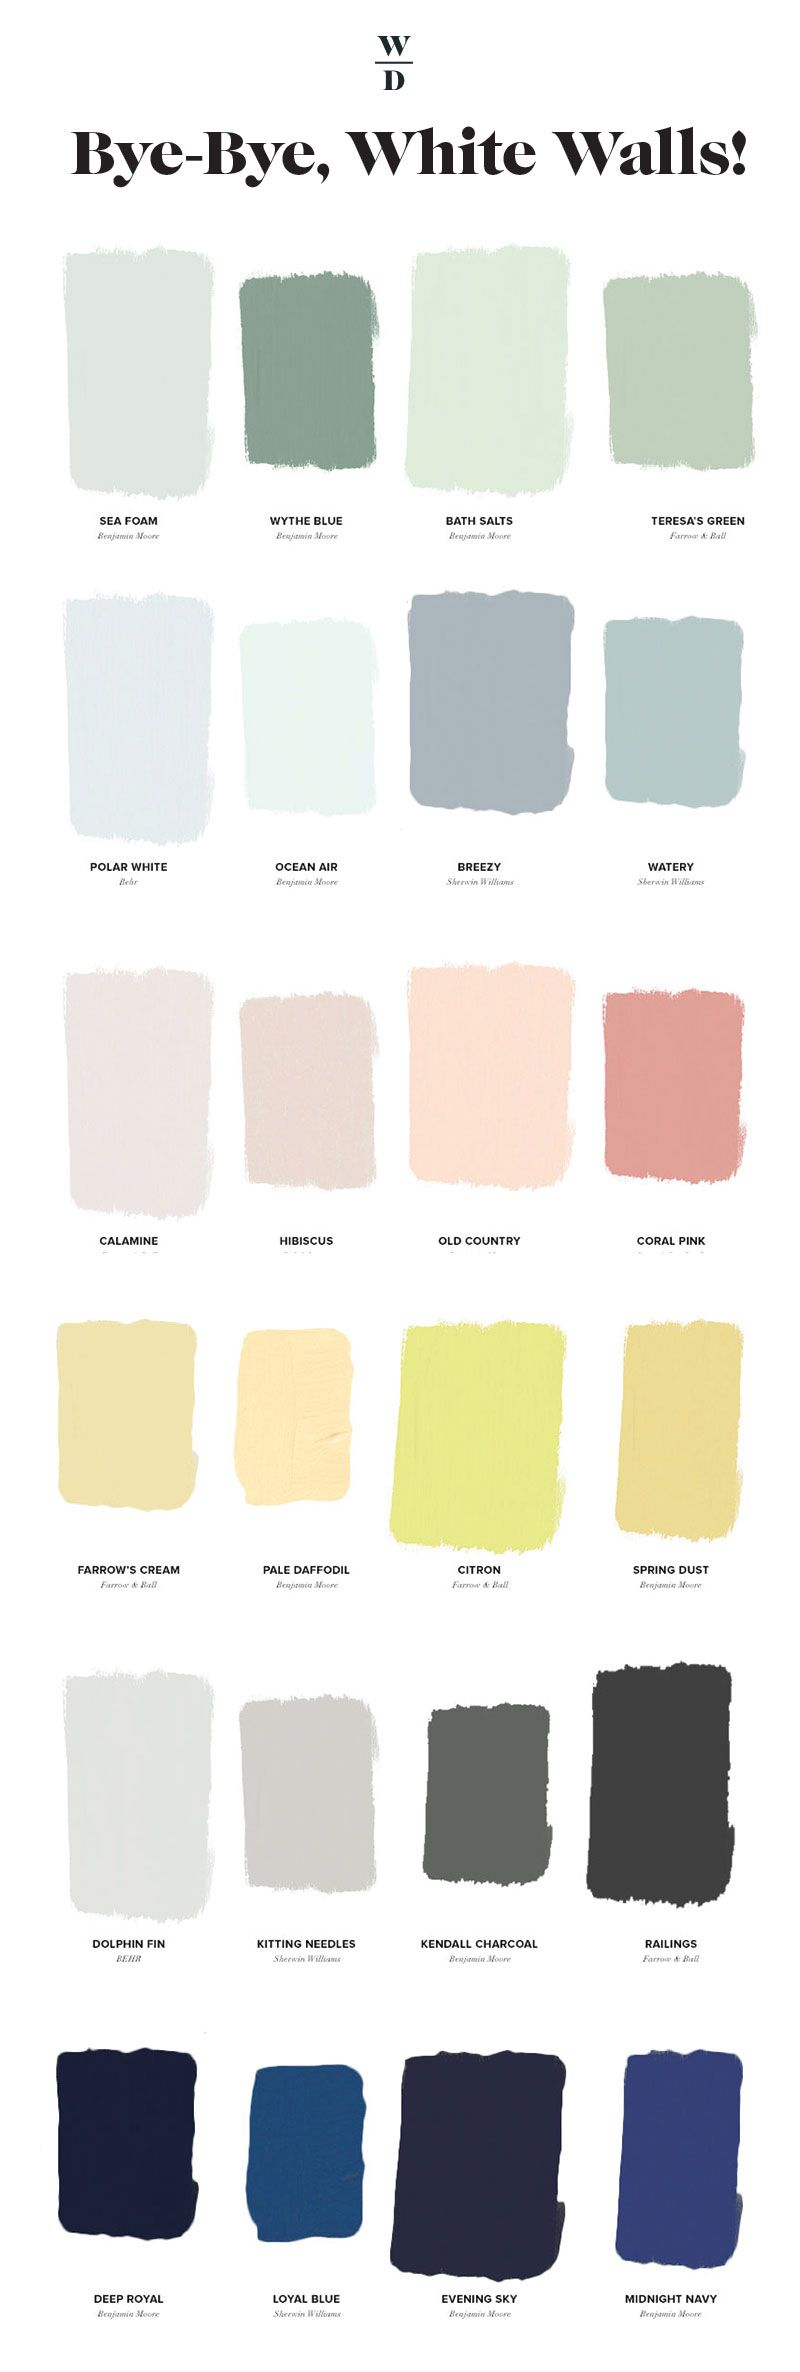 6 Paint Colors Worthy of Ditching White Walls - Wit & Delight | Designing a Life Well-Lived